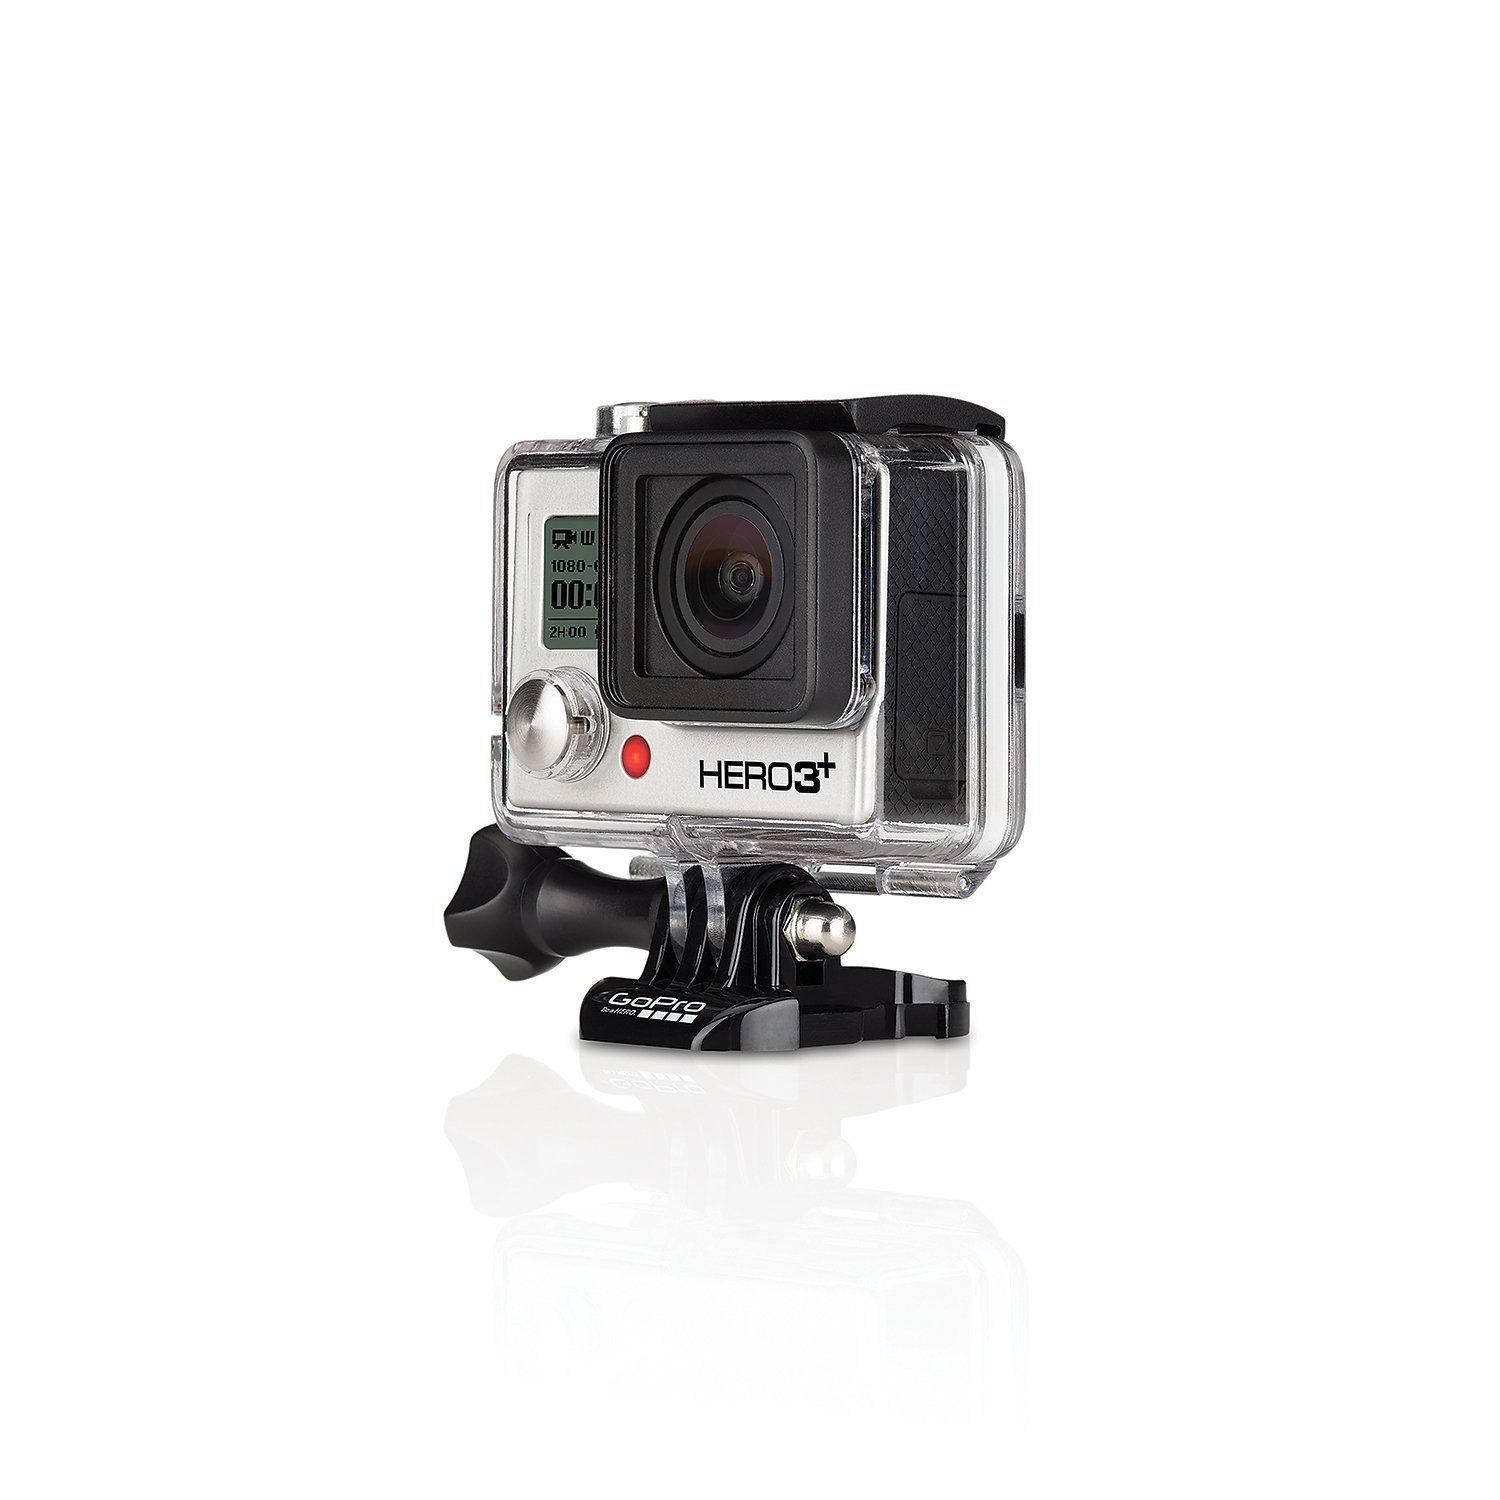 gopro-hero3plus-video-camera